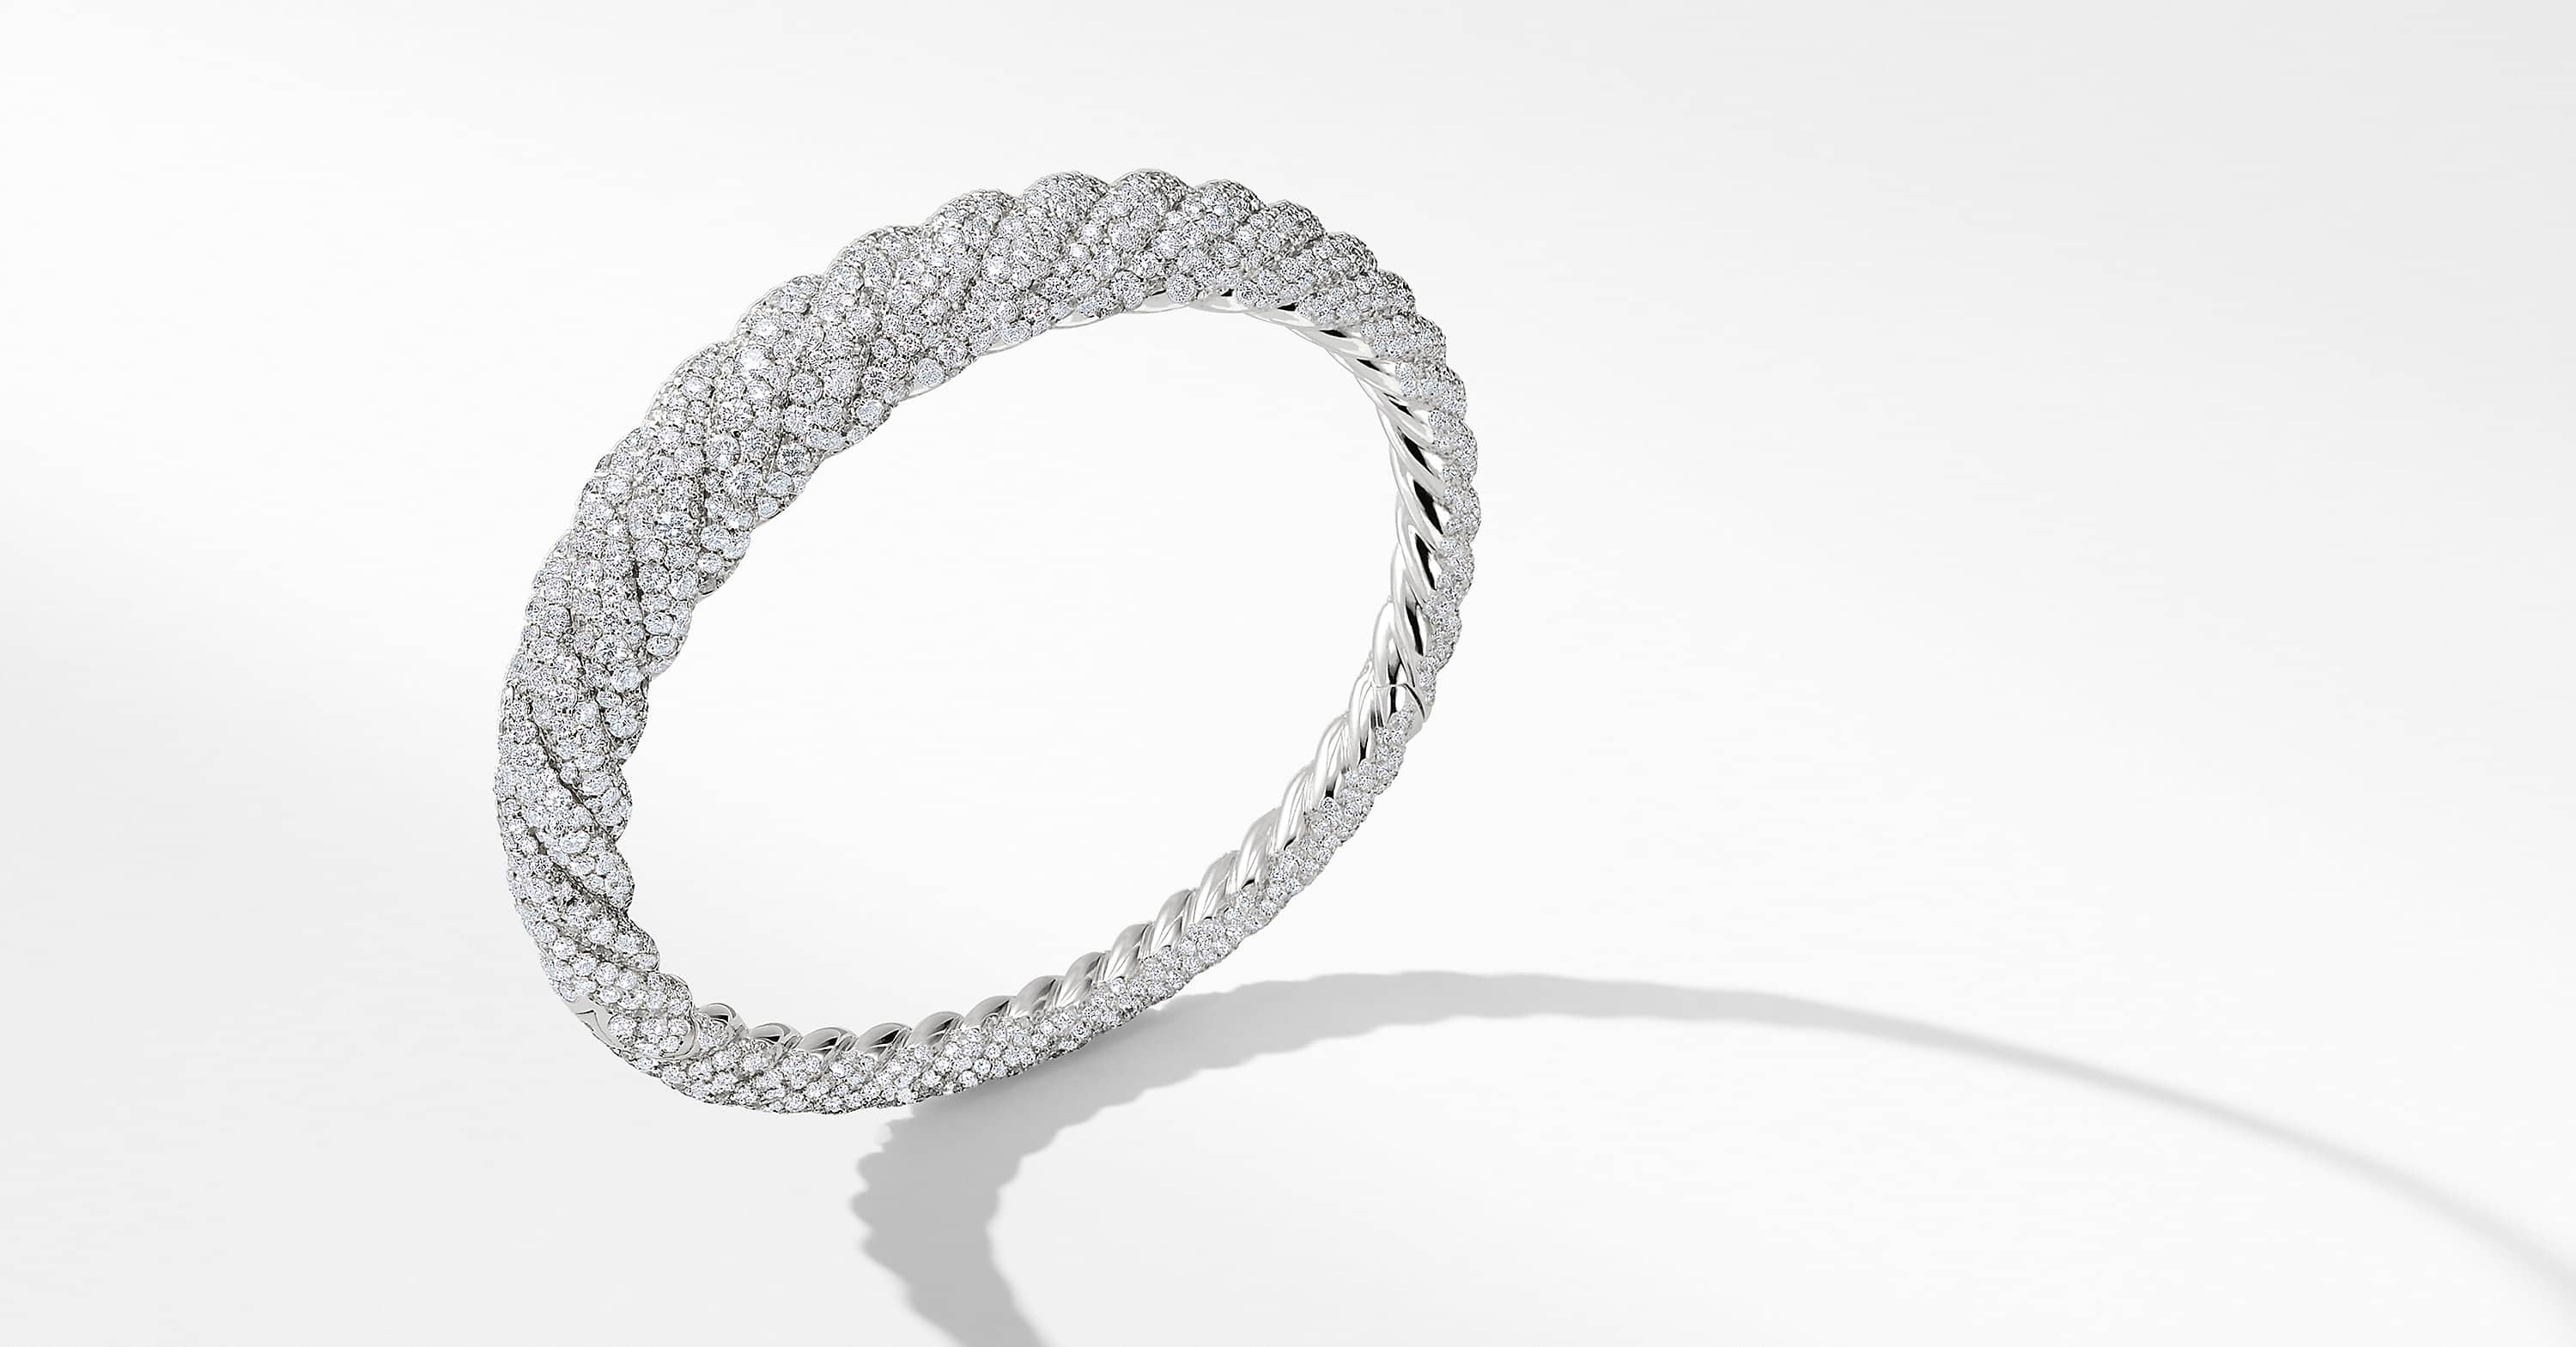 Pure Form® Cable Diamond Bracelet in 18K White Gold, 9.5mm